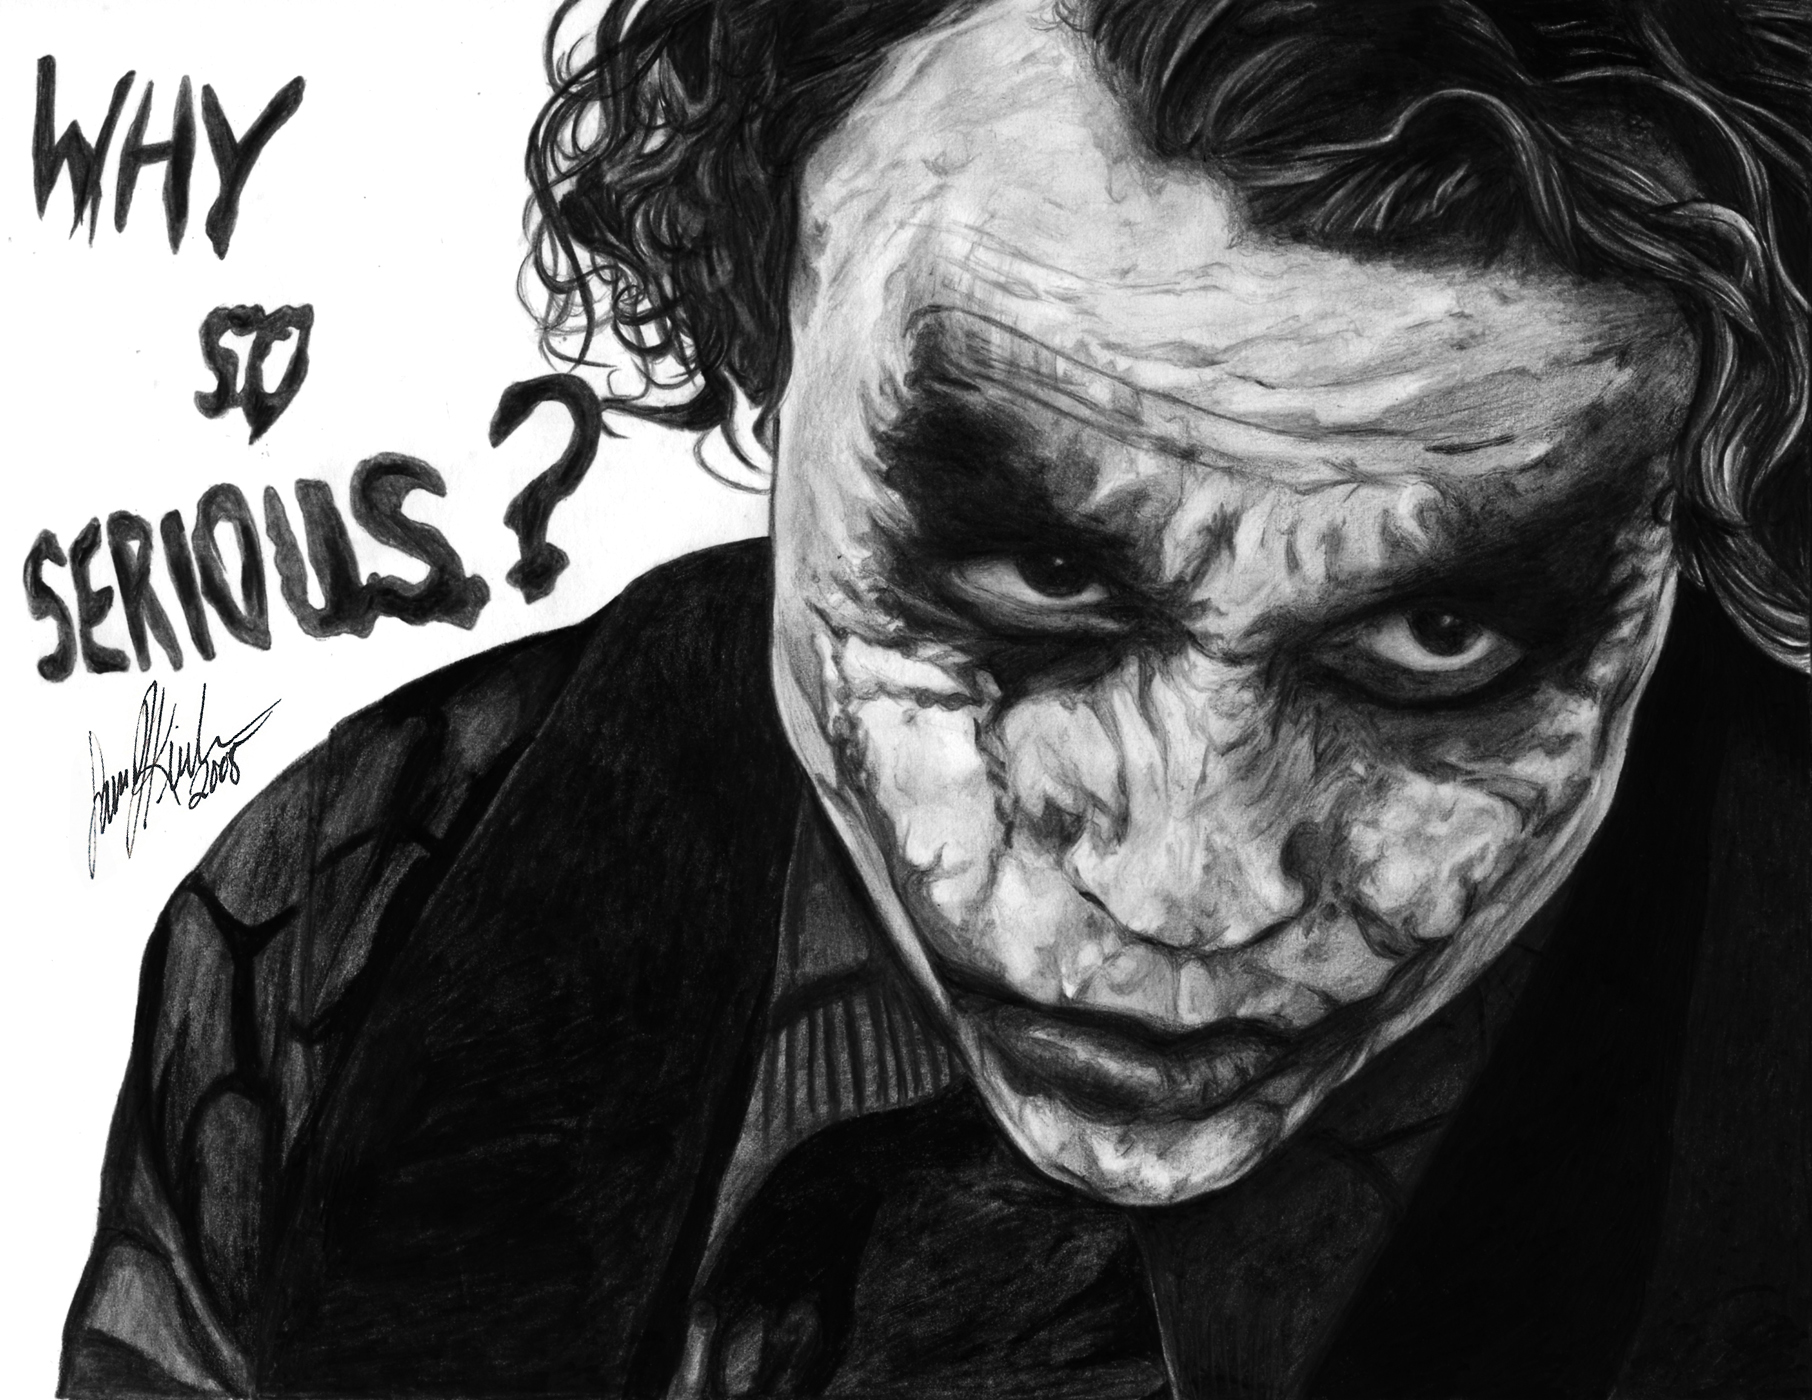 TDK__Why_So_Serious__by_Sanctioned.jpg